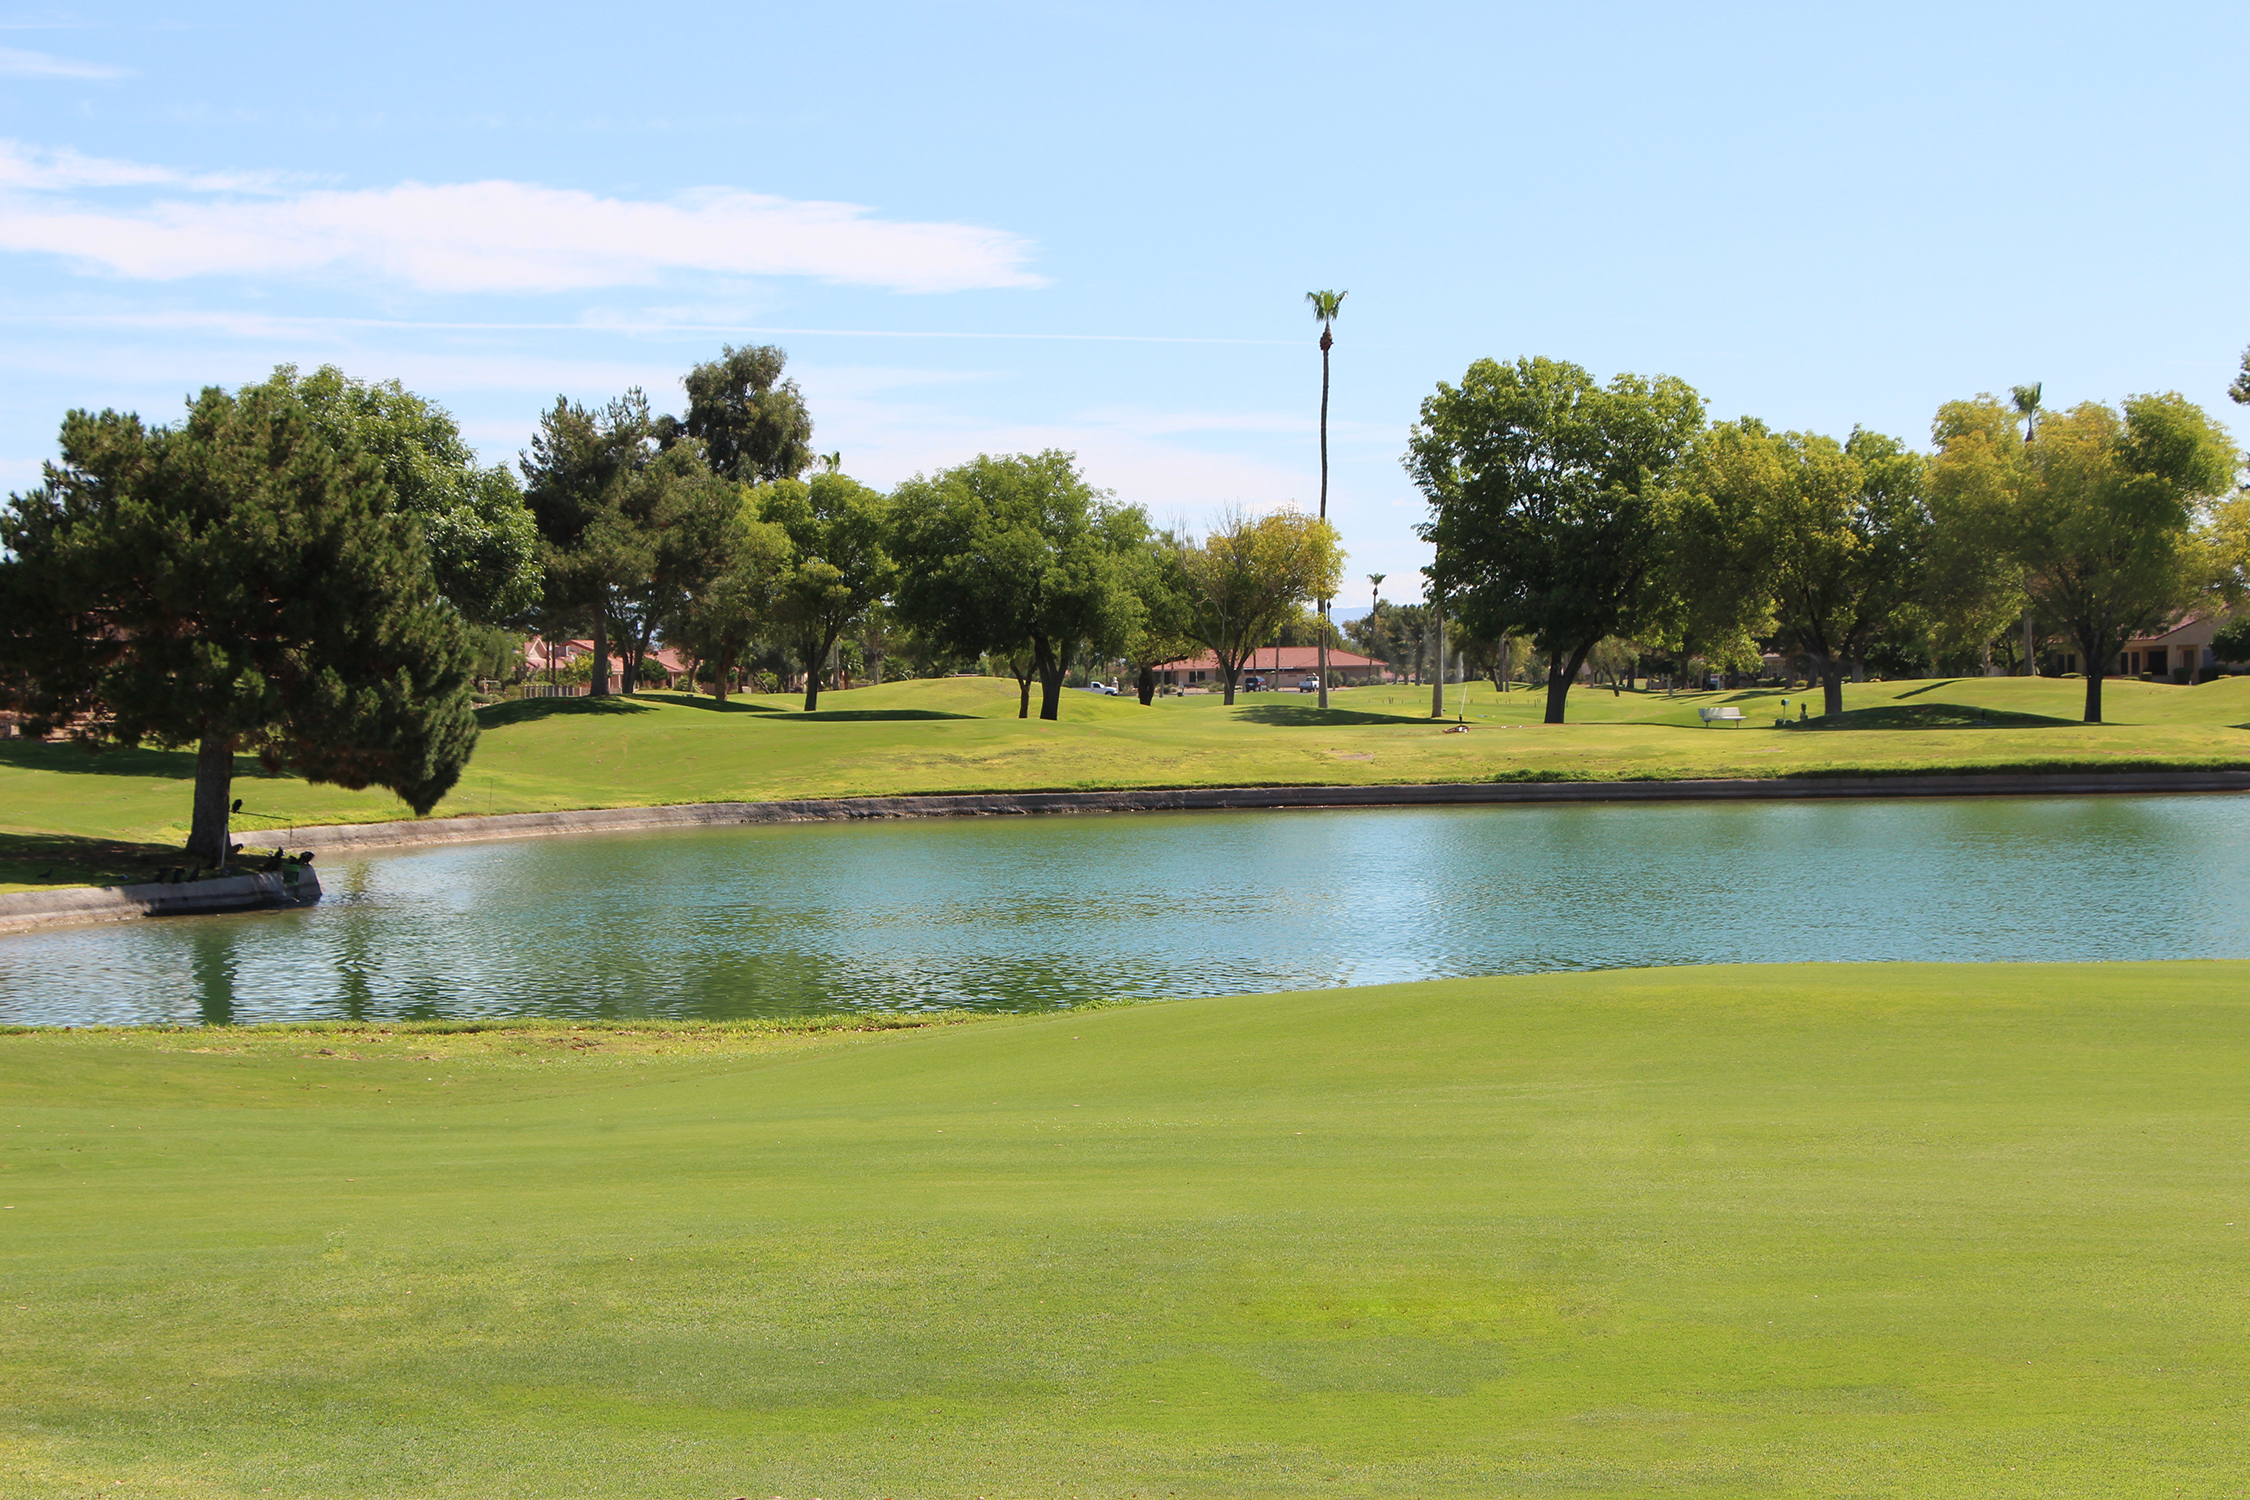 Green Team to host First Swing Clinic at Echo Mesa